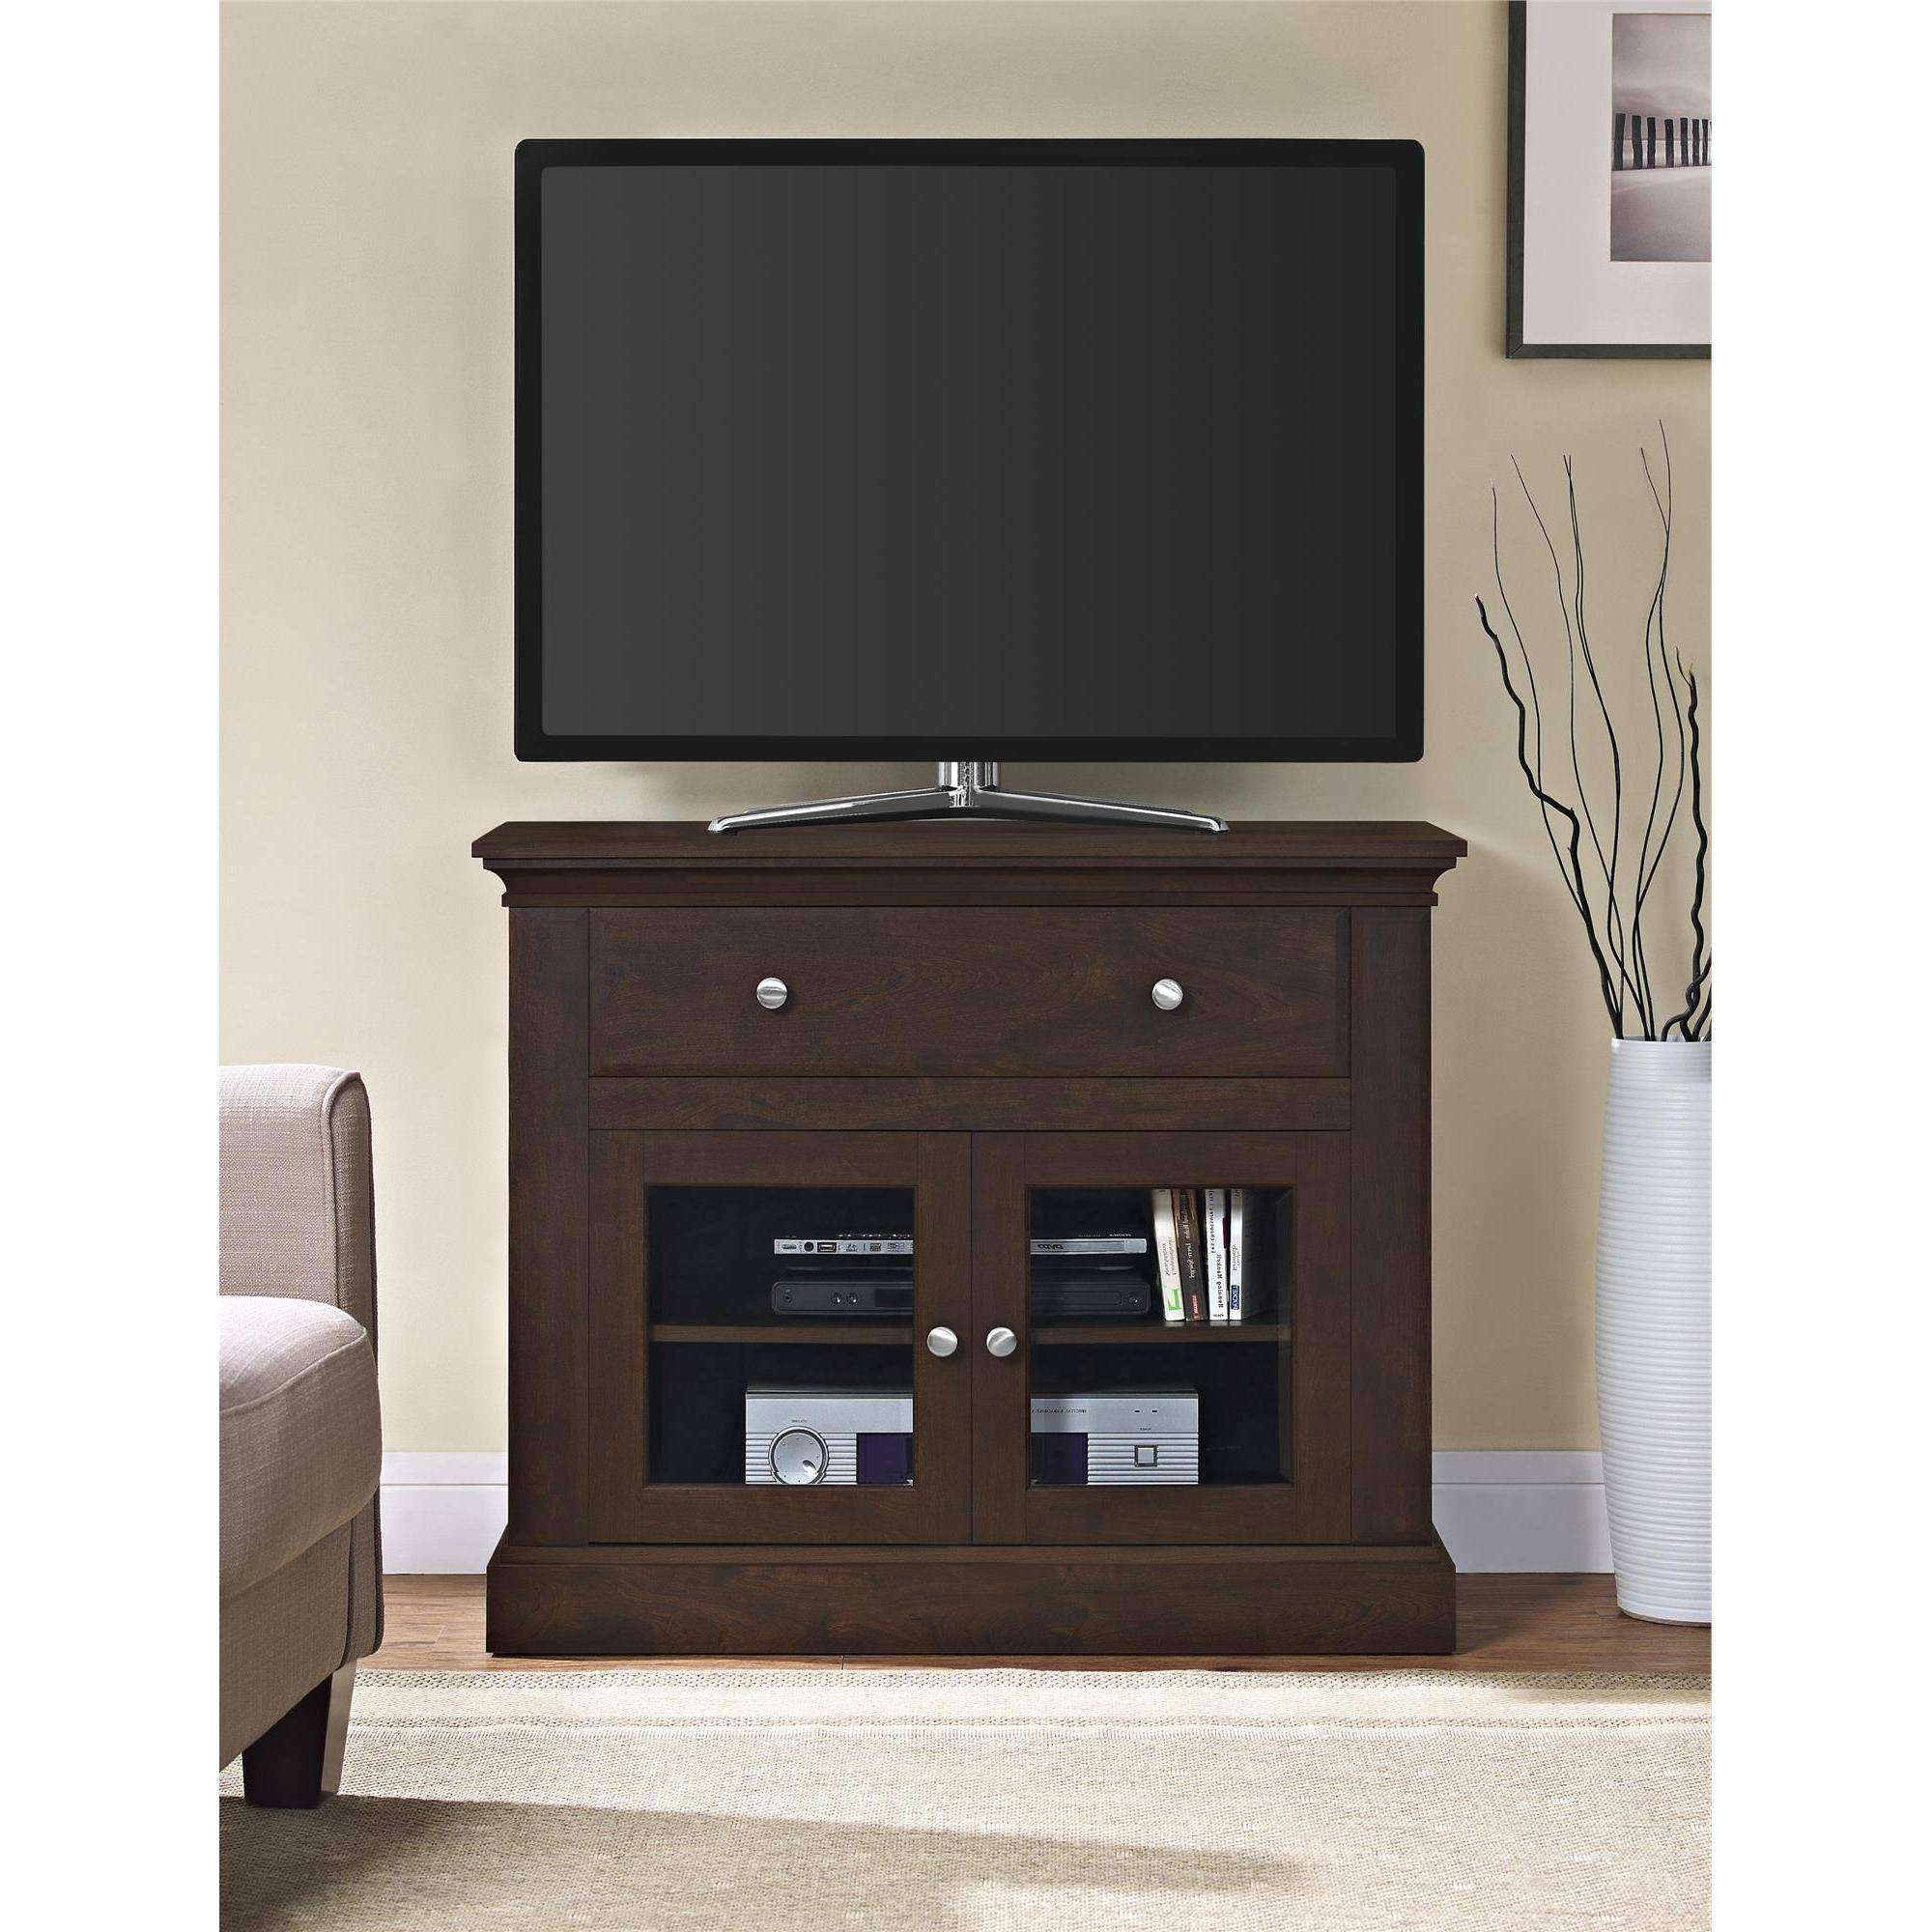 Tv Stands For 32 Inch Tv For 61 Inch Tv Stands (View 15 of 15)